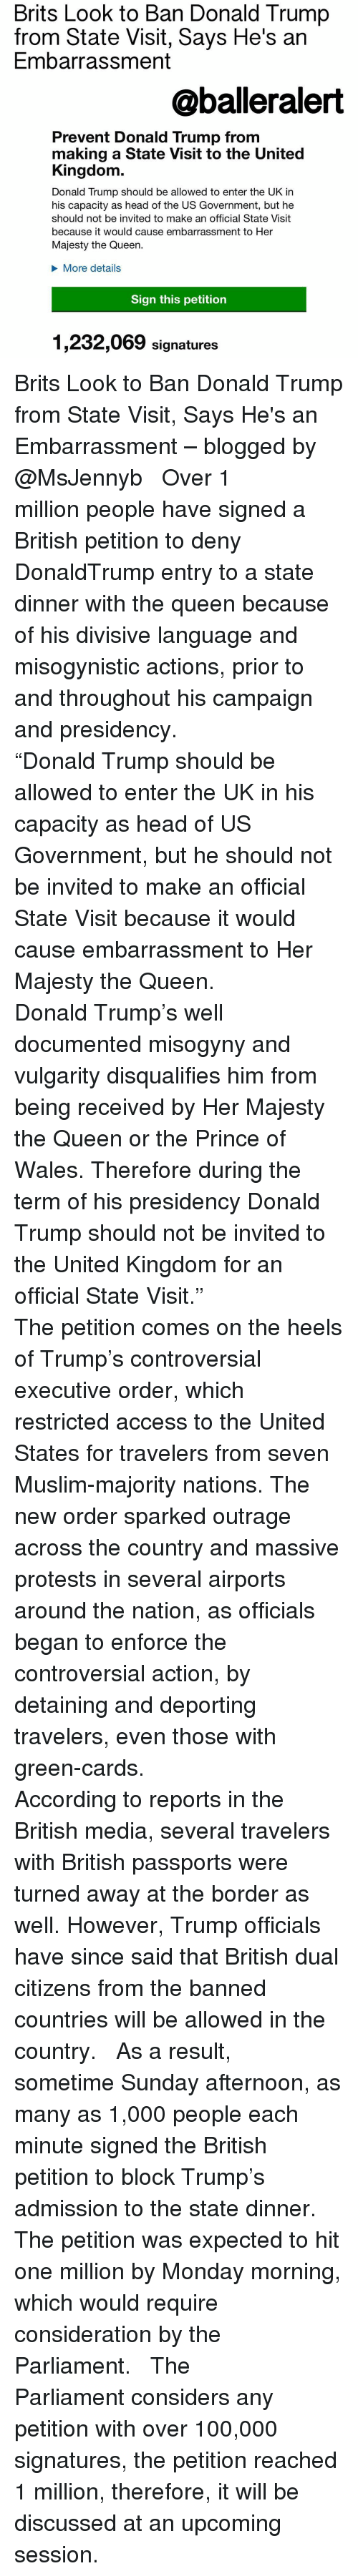 """green card: Brits Look to Ban Donald Trump  from State Visit, Says He's an  Embarrassment  @balleralert  Prevent Donald Trump from  making a State Visit to the United  Kingdom  Donald Trump should be allowed to enter the UK in  his capacity as head of the US Government, but he  should not be invited to make an official State Visit  because it would cause embarrassment to Her  Majesty the Queen.  More details  Sign this petition  1,232,069 signatures Brits Look to Ban Donald Trump from State Visit, Says He's an Embarrassment – blogged by @MsJennyb ⠀⠀⠀⠀⠀⠀⠀ ⠀⠀⠀⠀⠀⠀⠀ Over 1 million people have signed a British petition to deny DonaldTrump entry to a state dinner with the queen because of his divisive language and misogynistic actions, prior to and throughout his campaign and presidency. ⠀⠀⠀⠀⠀⠀⠀ ⠀⠀⠀⠀⠀⠀⠀ """"Donald Trump should be allowed to enter the UK in his capacity as head of US Government, but he should not be invited to make an official State Visit because it would cause embarrassment to Her Majesty the Queen. ⠀⠀⠀⠀⠀⠀⠀ ⠀⠀⠀⠀⠀⠀⠀ Donald Trump's well documented misogyny and vulgarity disqualifies him from being received by Her Majesty the Queen or the Prince of Wales. Therefore during the term of his presidency Donald Trump should not be invited to the United Kingdom for an official State Visit."""" ⠀⠀⠀⠀⠀⠀⠀ ⠀⠀⠀⠀⠀⠀⠀ The petition comes on the heels of Trump's controversial executive order, which restricted access to the United States for travelers from seven Muslim-majority nations. The new order sparked outrage across the country and massive protests in several airports around the nation, as officials began to enforce the controversial action, by detaining and deporting travelers, even those with green-cards. ⠀⠀⠀⠀⠀⠀⠀ ⠀⠀⠀⠀⠀⠀⠀ According to reports in the British media, several travelers with British passports were turned away at the border as well. However, Trump officials have since said that British dual citizens from the banned countries will be allowed in the country. ⠀⠀⠀⠀⠀⠀⠀"""